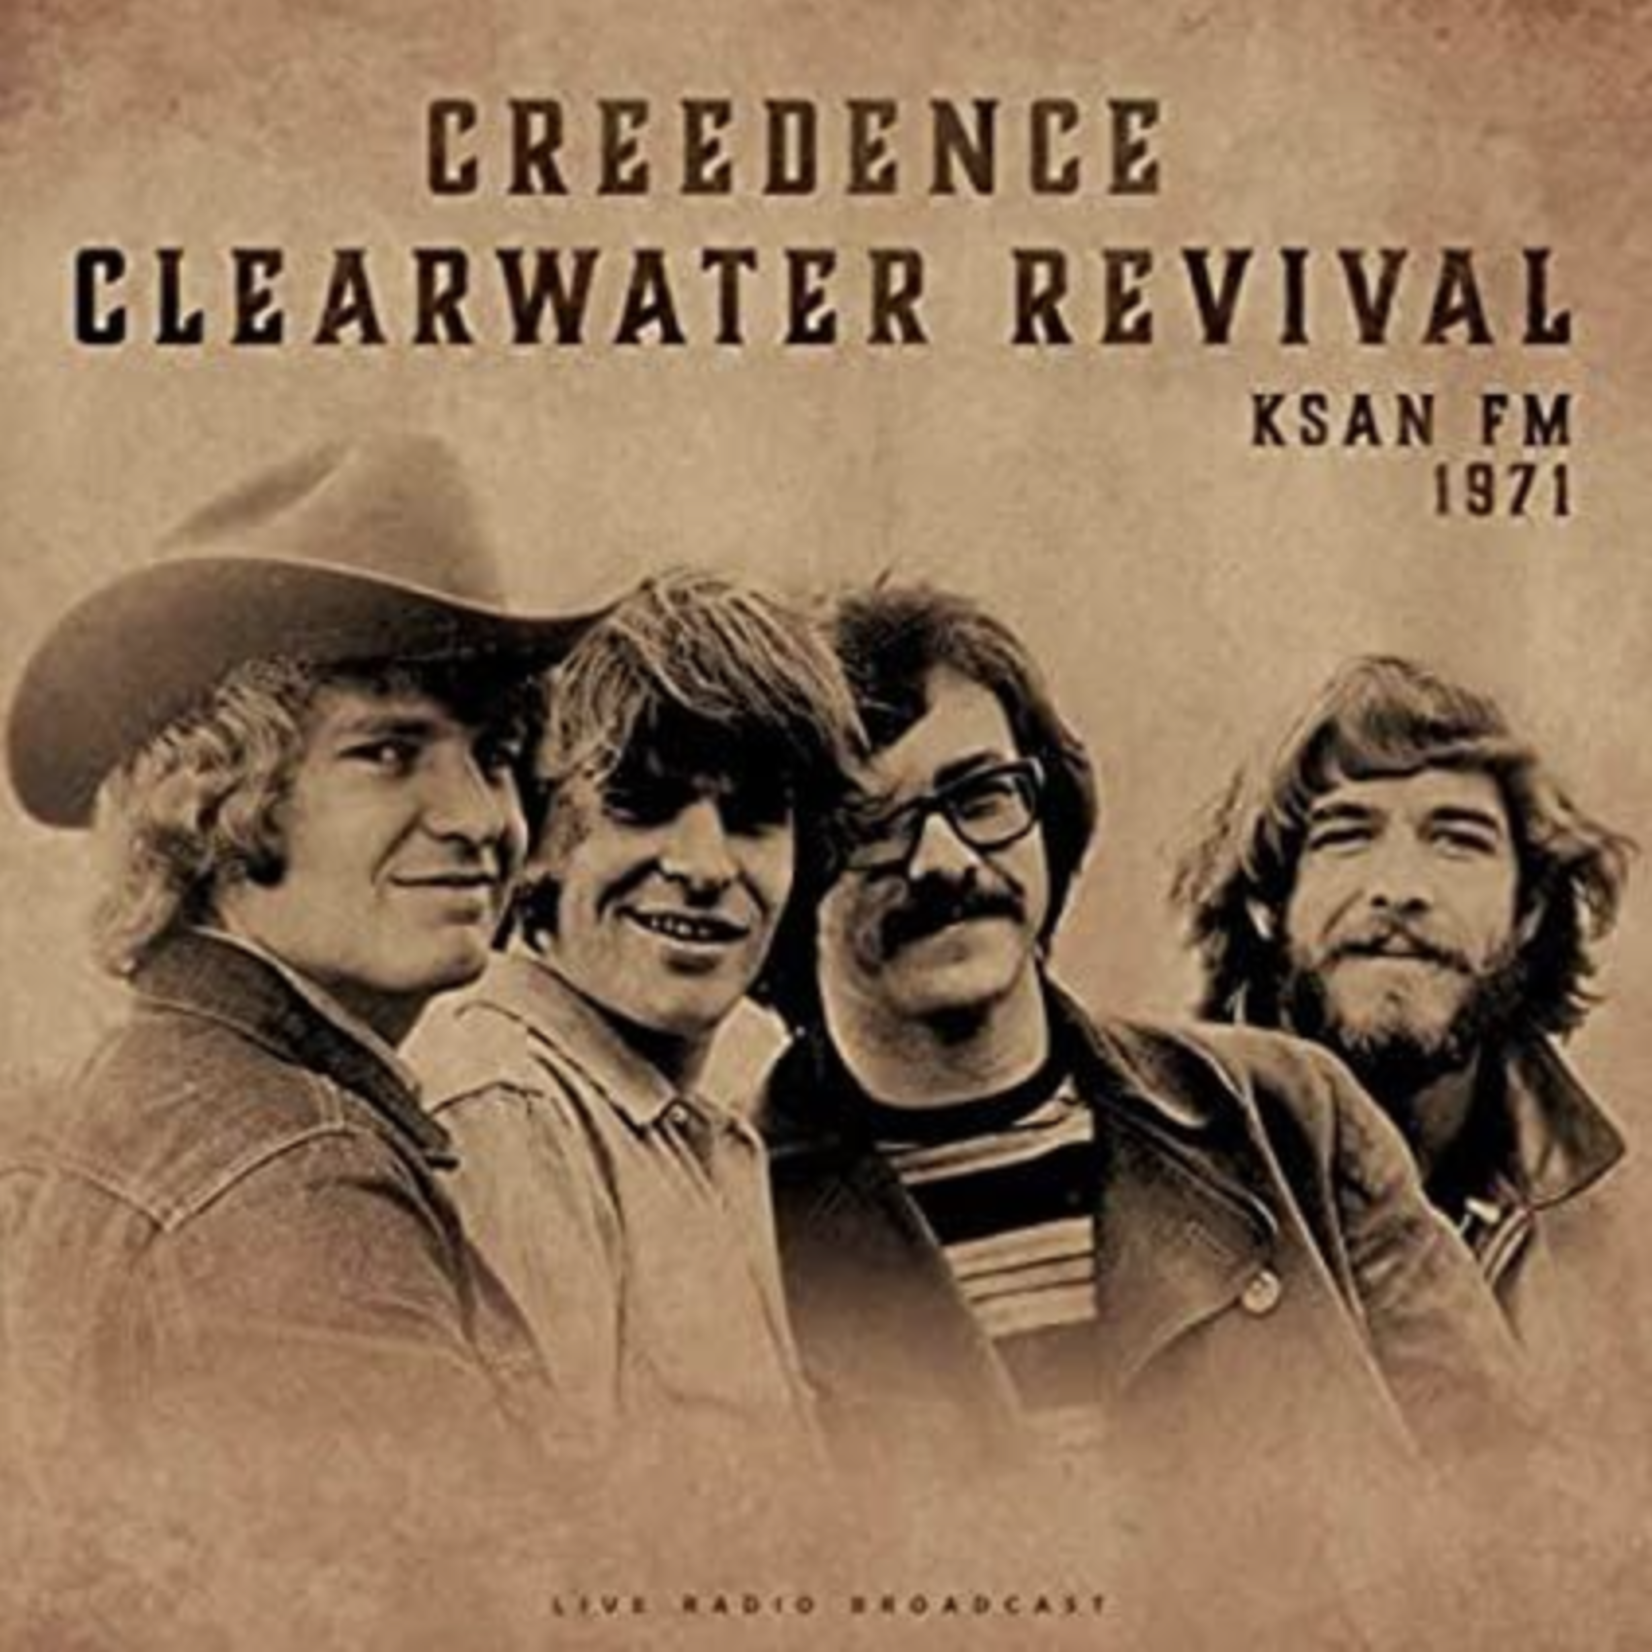 Monostereo Creedence Clearwater Revival KSAN FM 1971